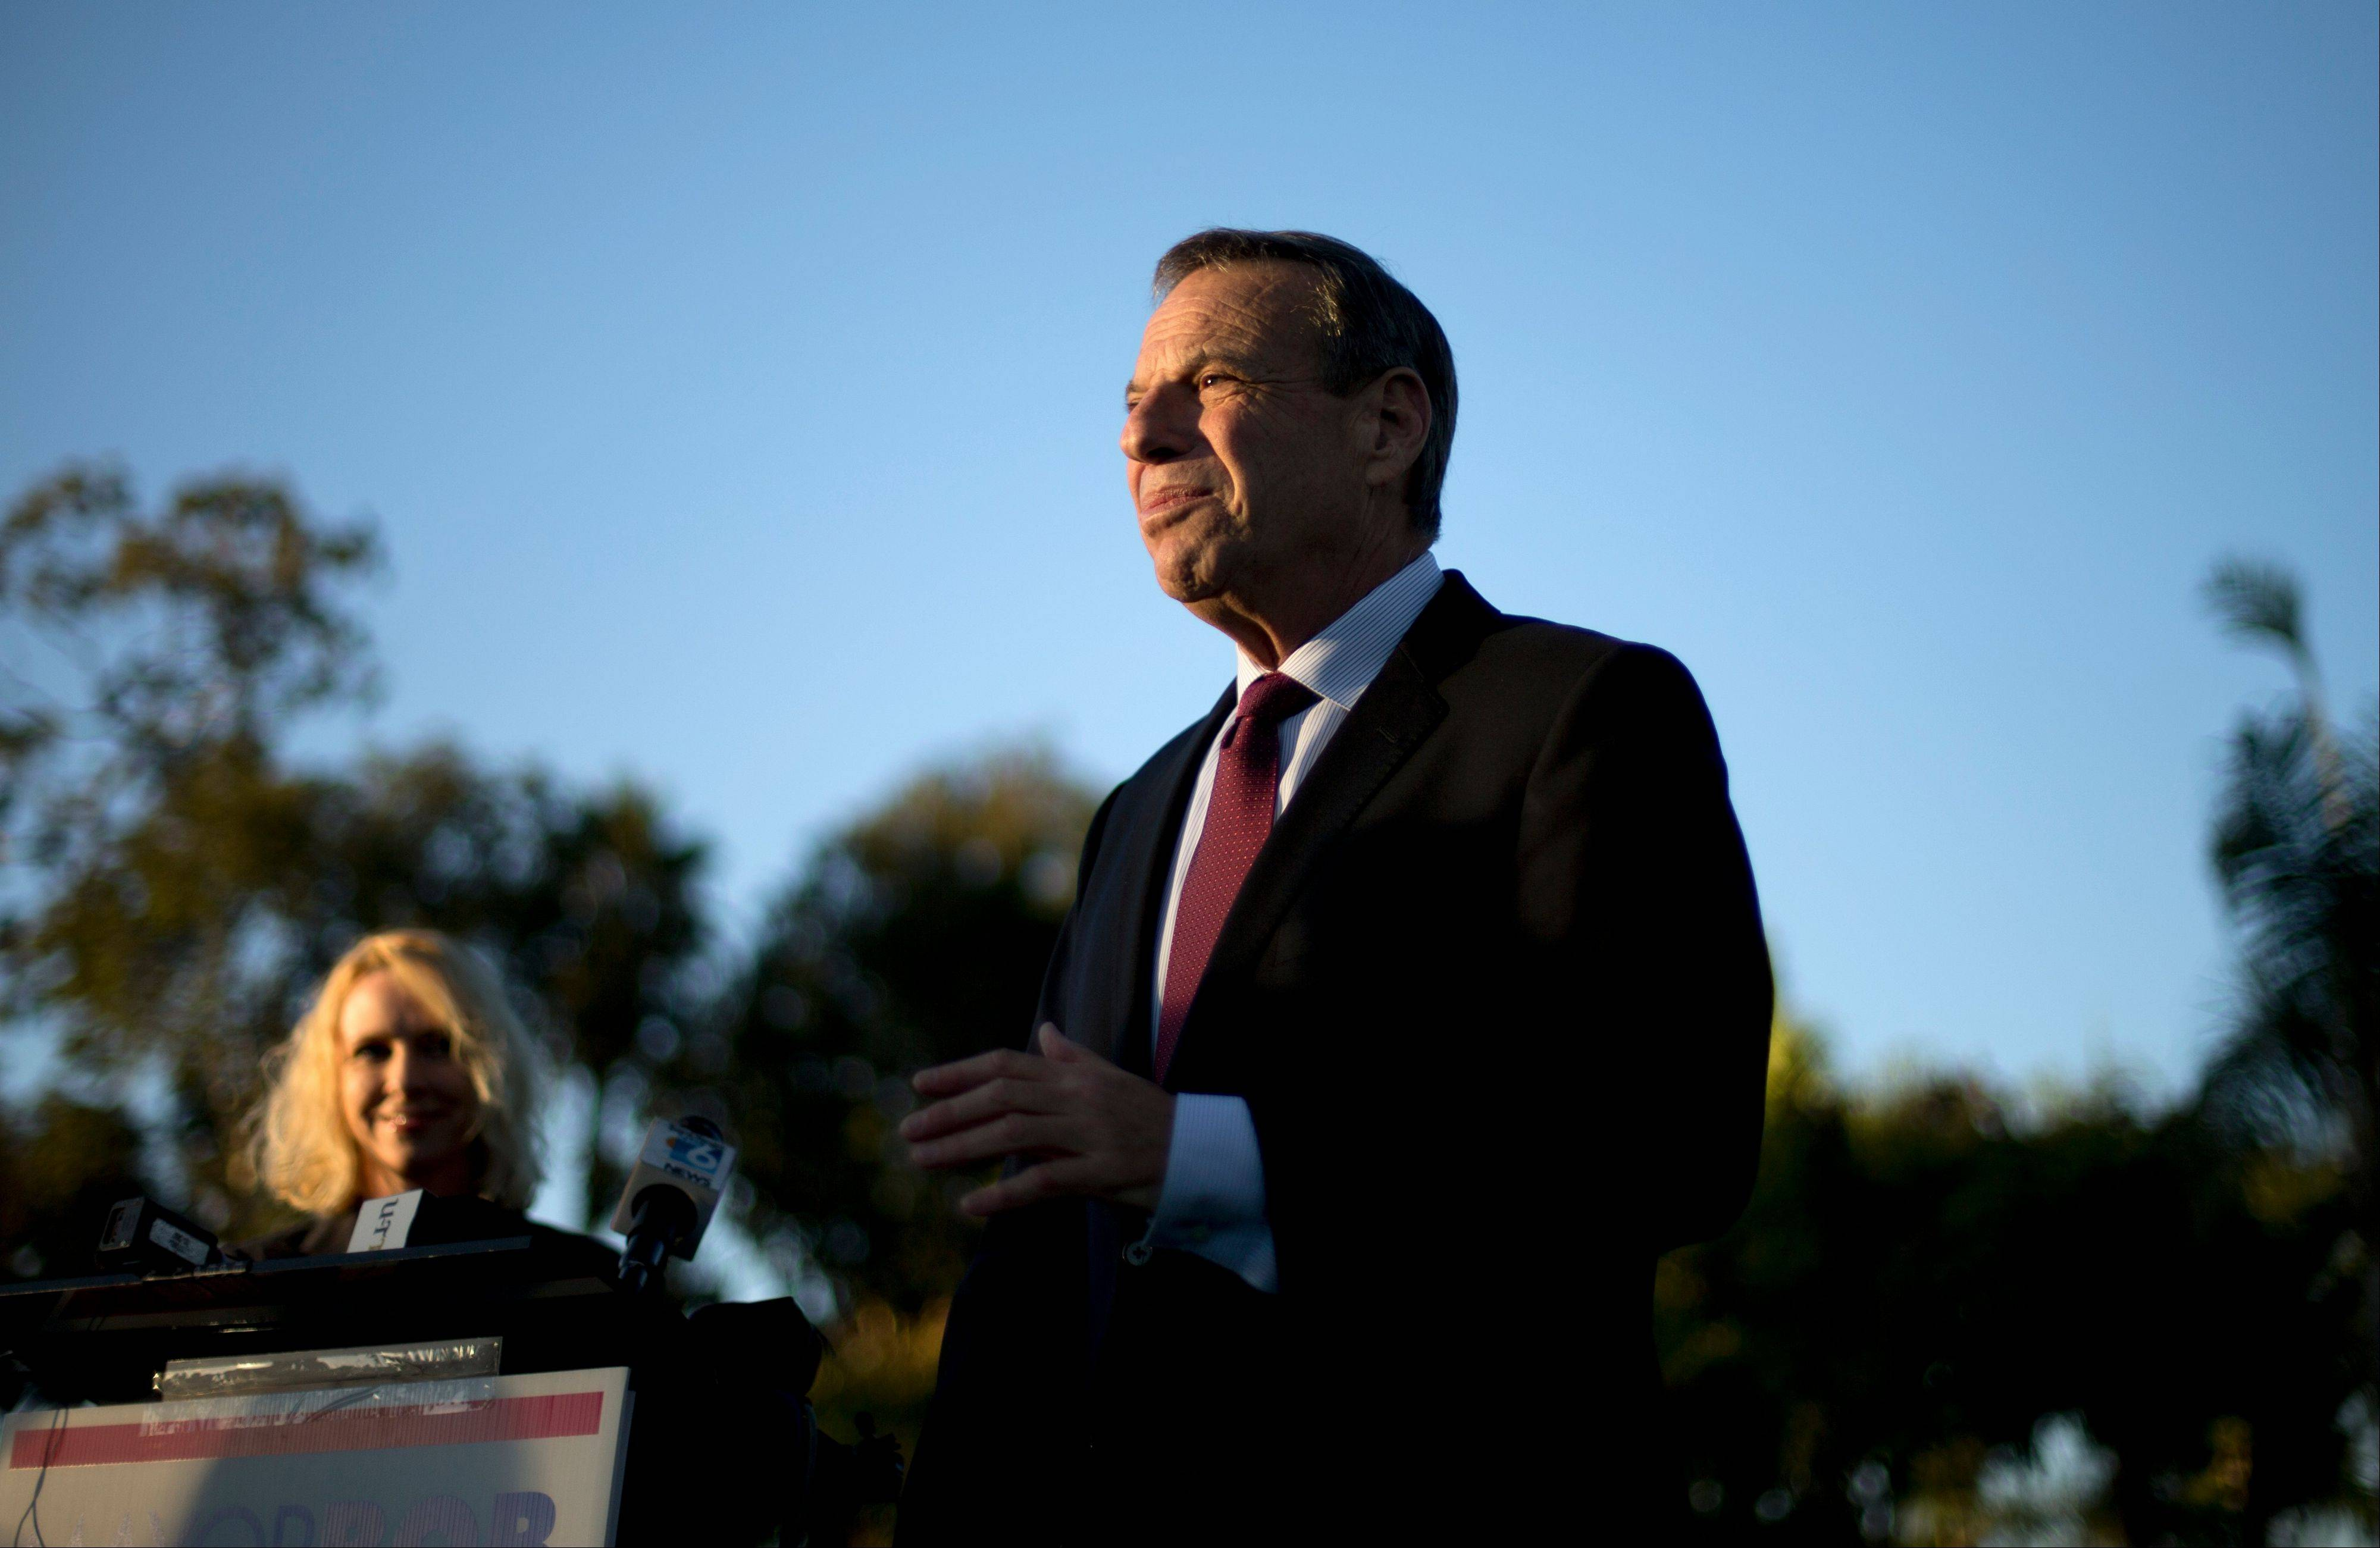 In this Nov. 7, 2012 file photo, San Diego Mayor Bob Filner, right, speaks alongside his then-fiancee Bronwyn Ingram, left, during a news conference at a park in San Diego. It has been anything but normal for San Diego and its first Democratic leader in 20 years since prominent former supporters all